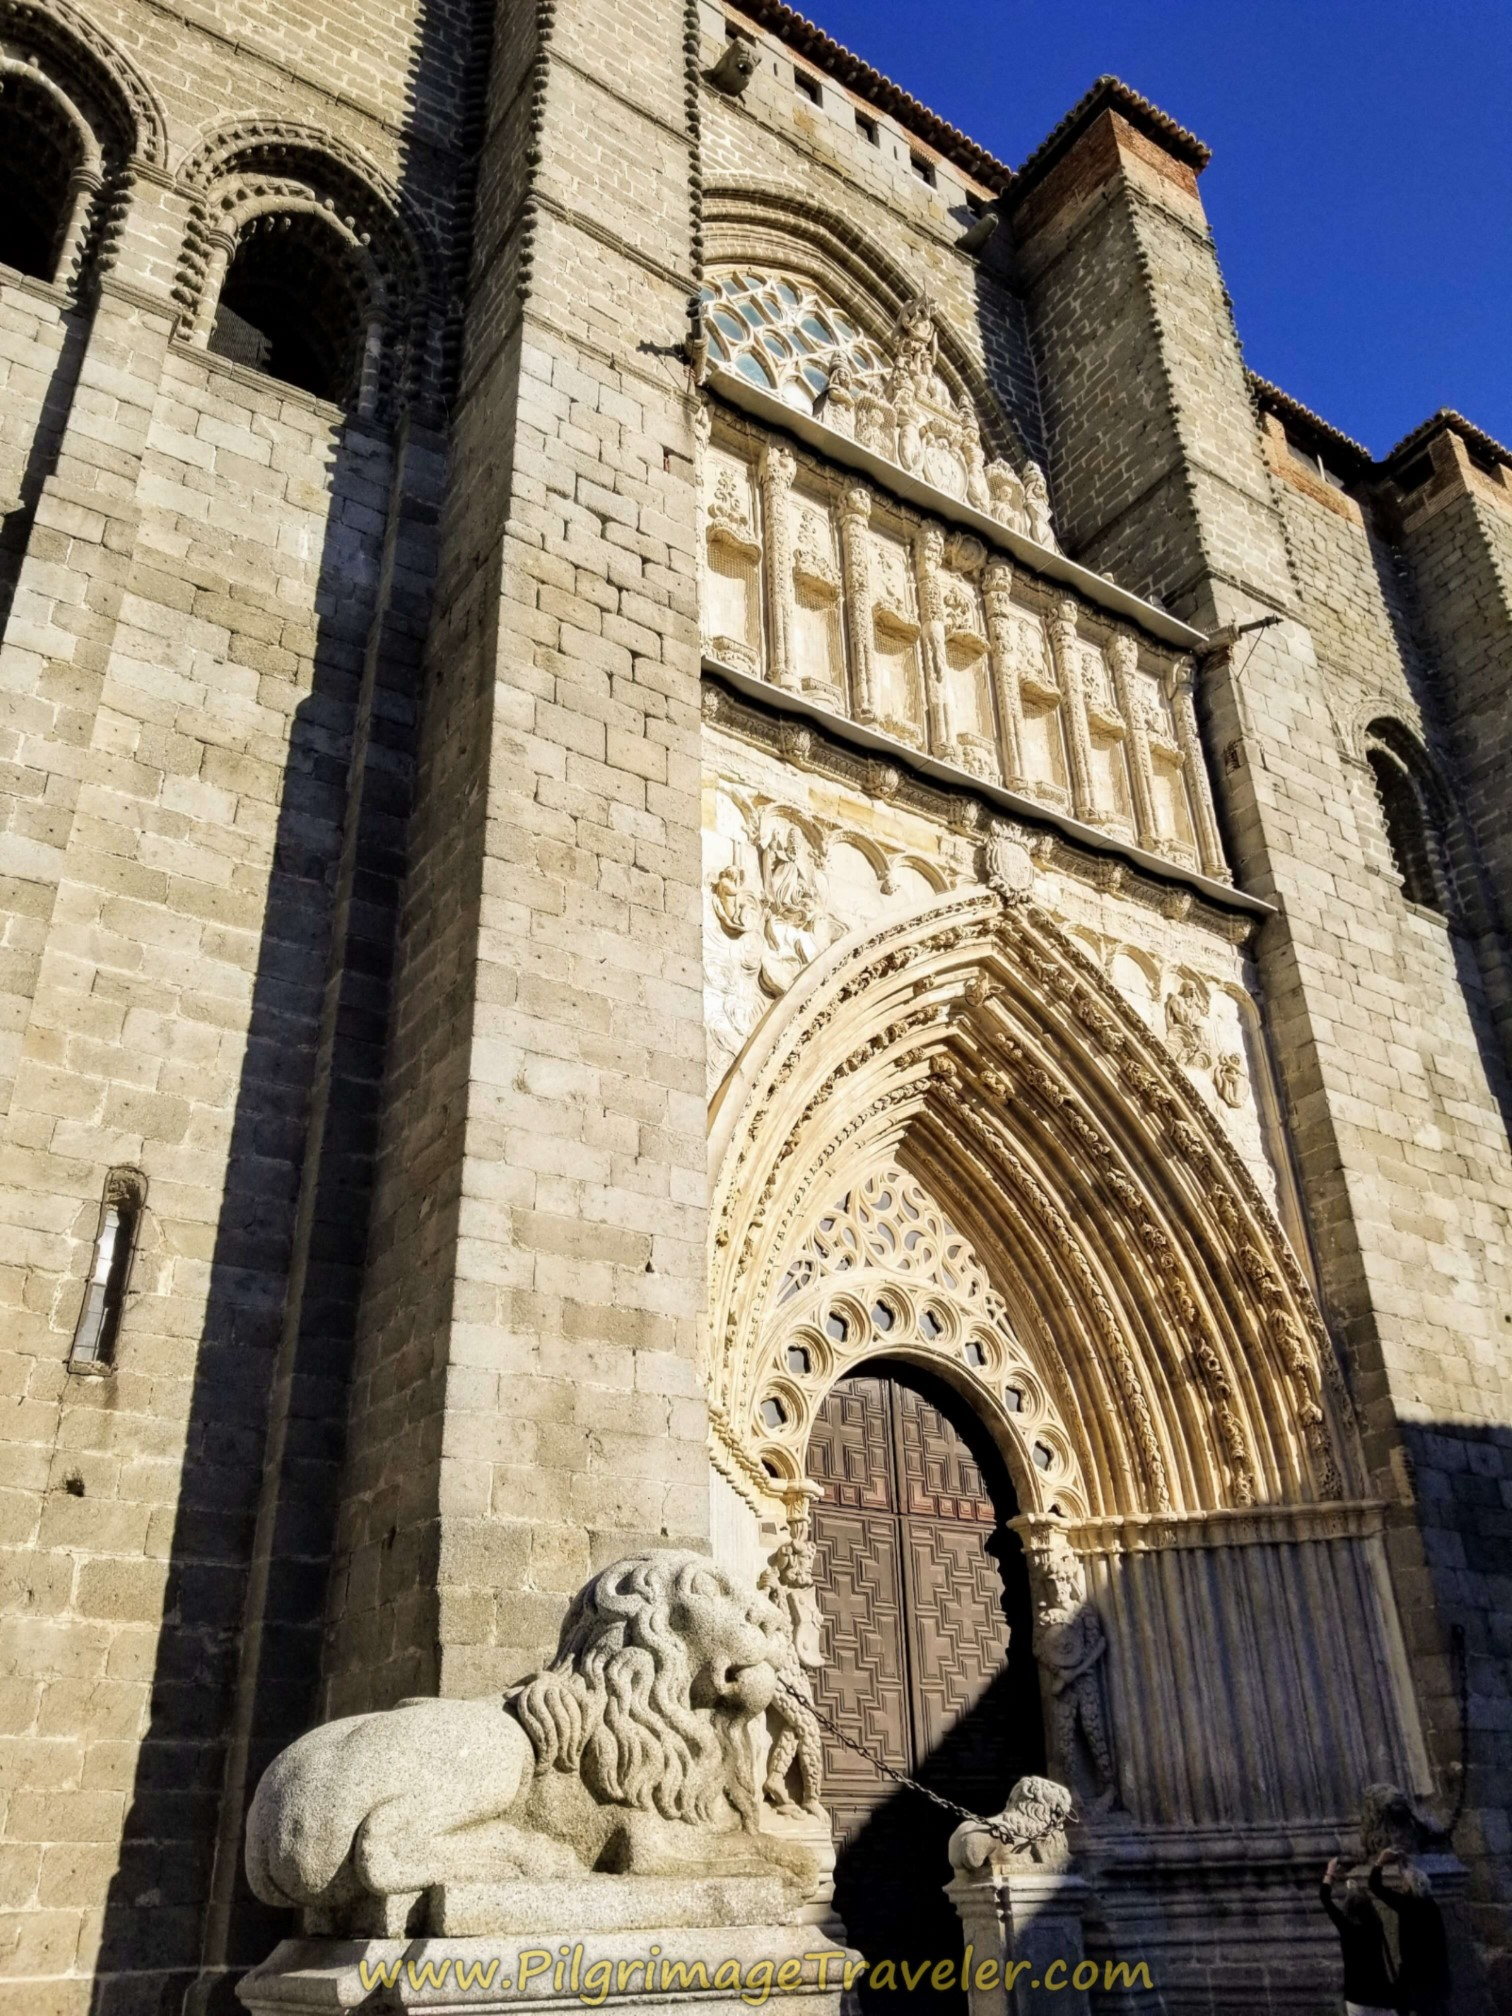 Lion's Flank the Entrance to the Cathedral